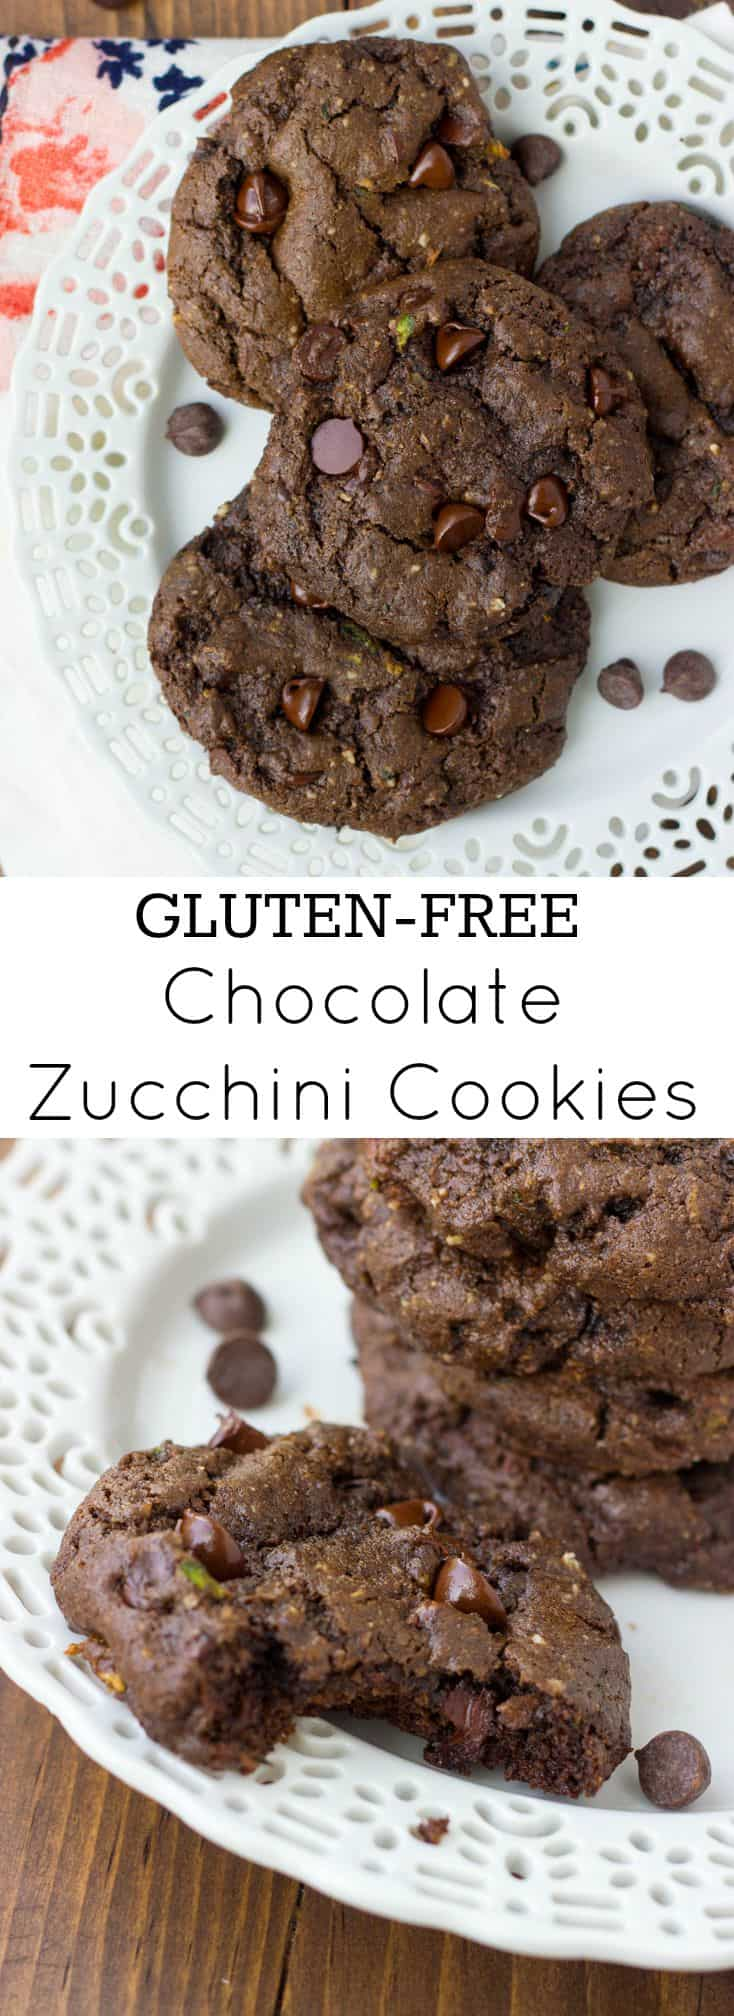 Gluten-Free Triple Chocolate Zucchini Cookies! Fudgey, rich and chocolatey. {Dairy-Free}